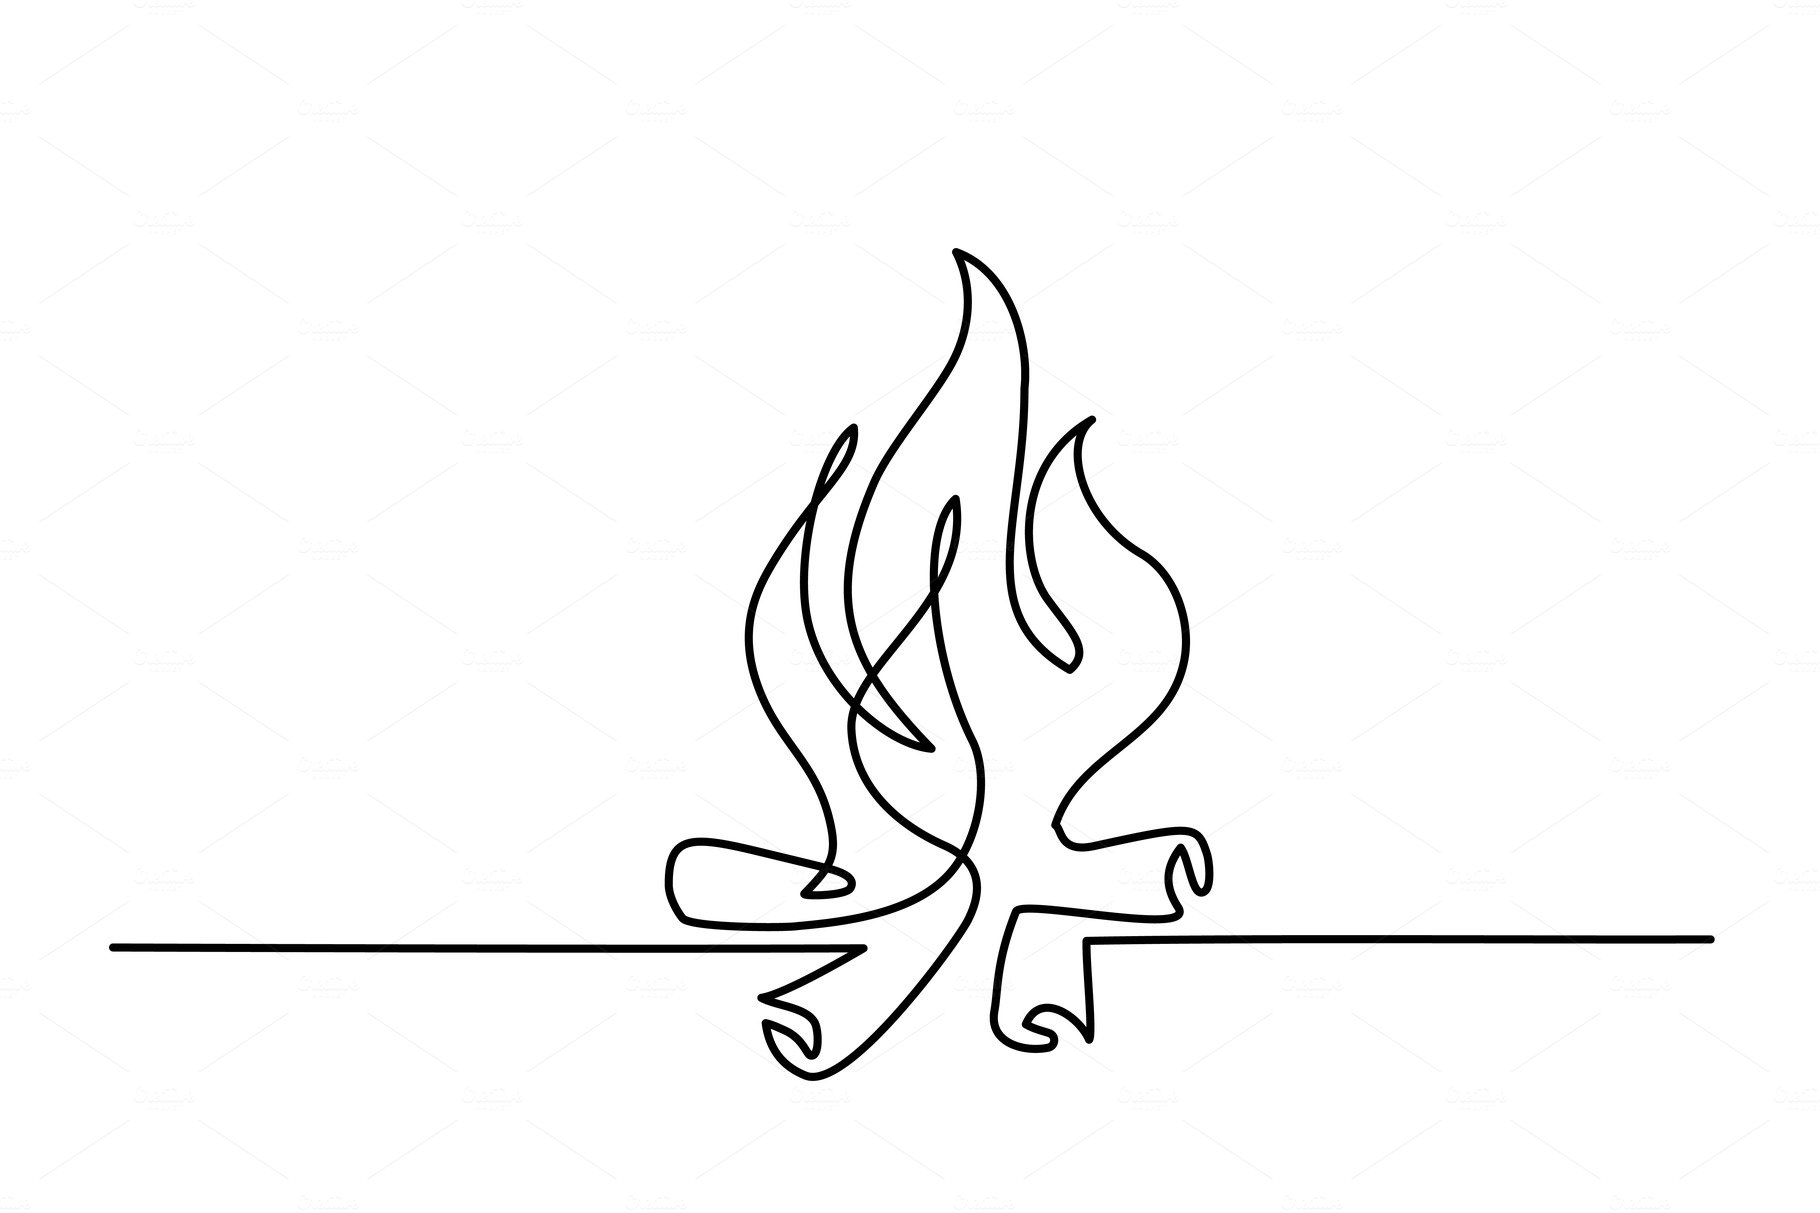 Fire outline icons line drawing ~ Illustrations ~ Creative